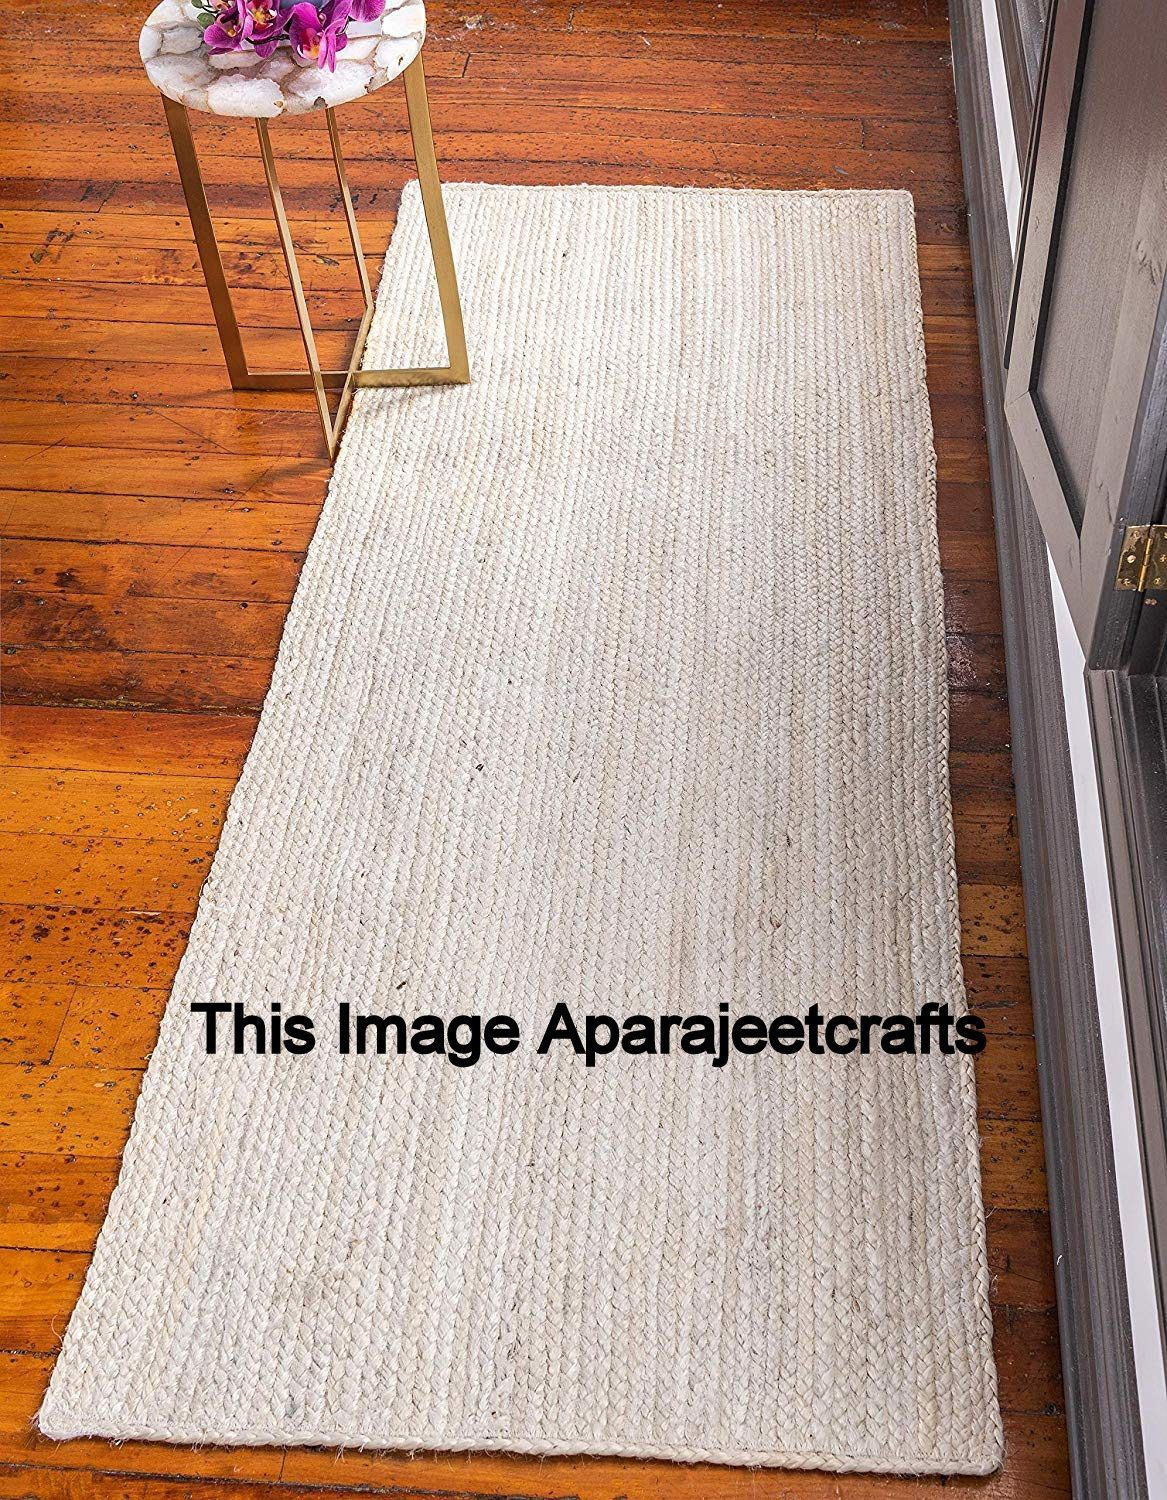 Hottest Images Round Rugs Kitchen Strategies Maybe You Have Wanted To Incorporate A Circular Rug At Home But Haven T Qui Natural Jute Rug Jute Rug Natural Rug